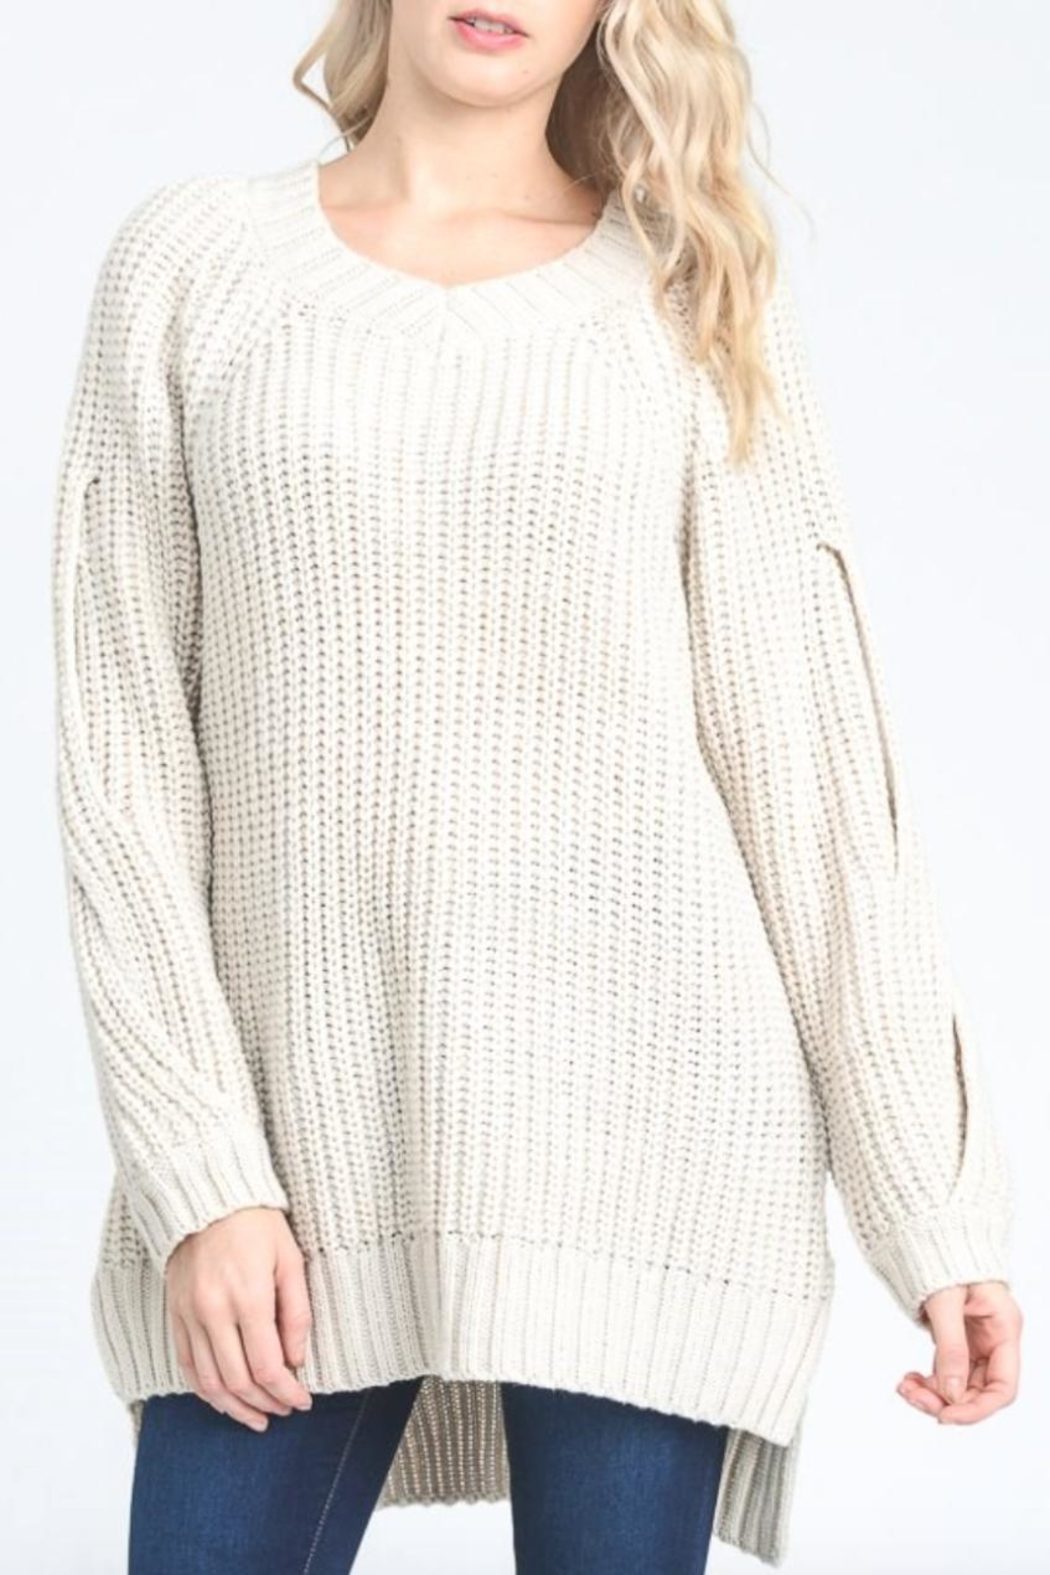 Jodifl Hidden Cold-Shoulder Sweater - Main Image